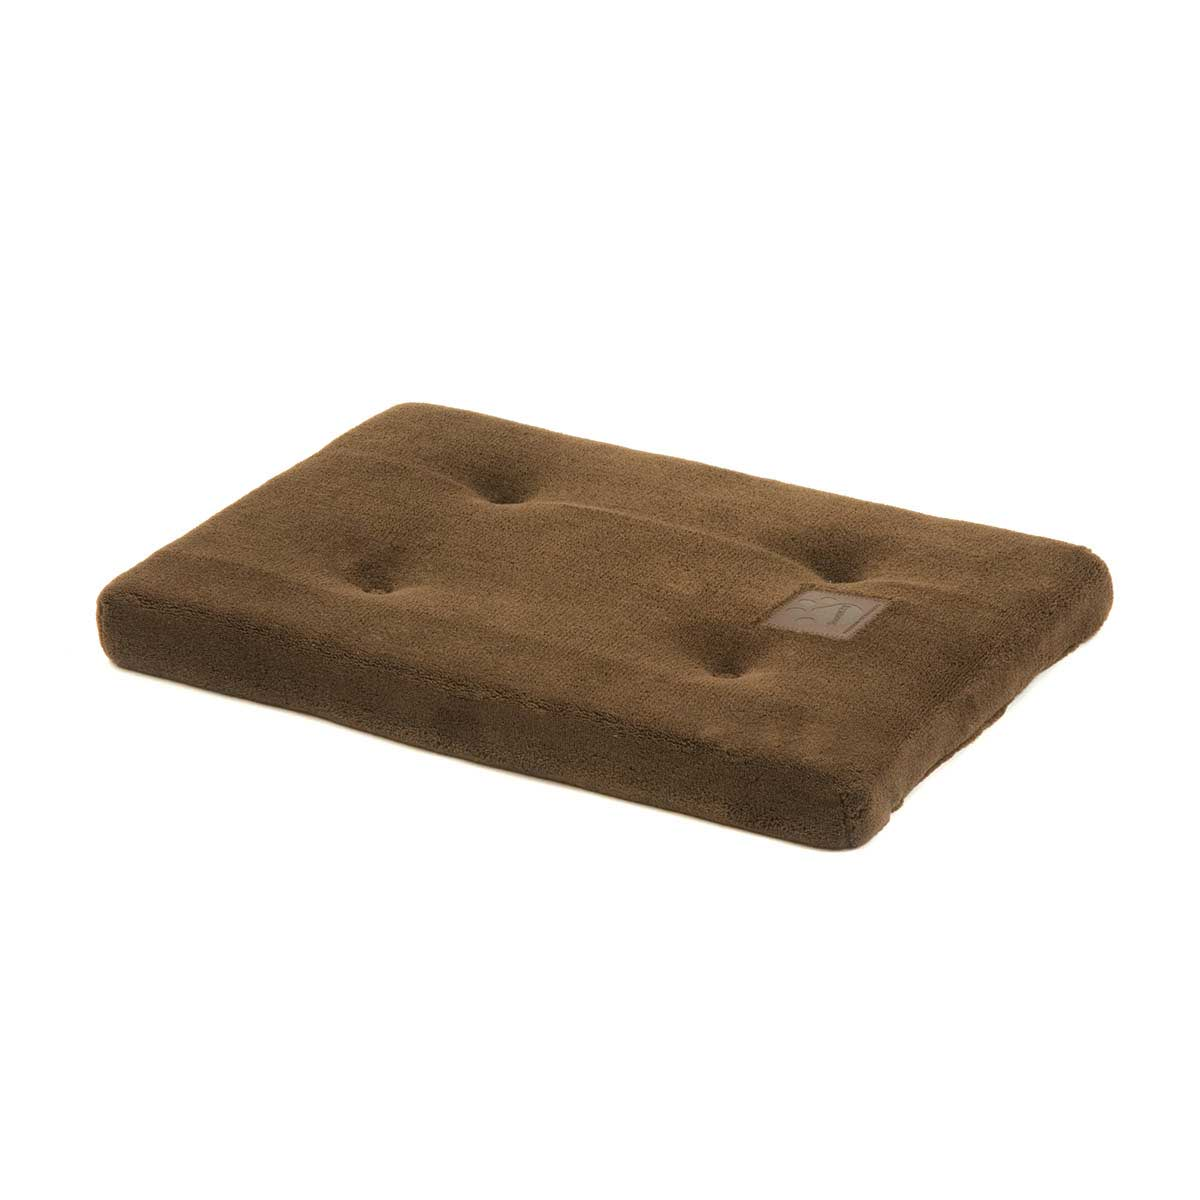 Chocolate Brown Snoozzy Mattress for Dogs- 17.5 inches by 11.5 inches